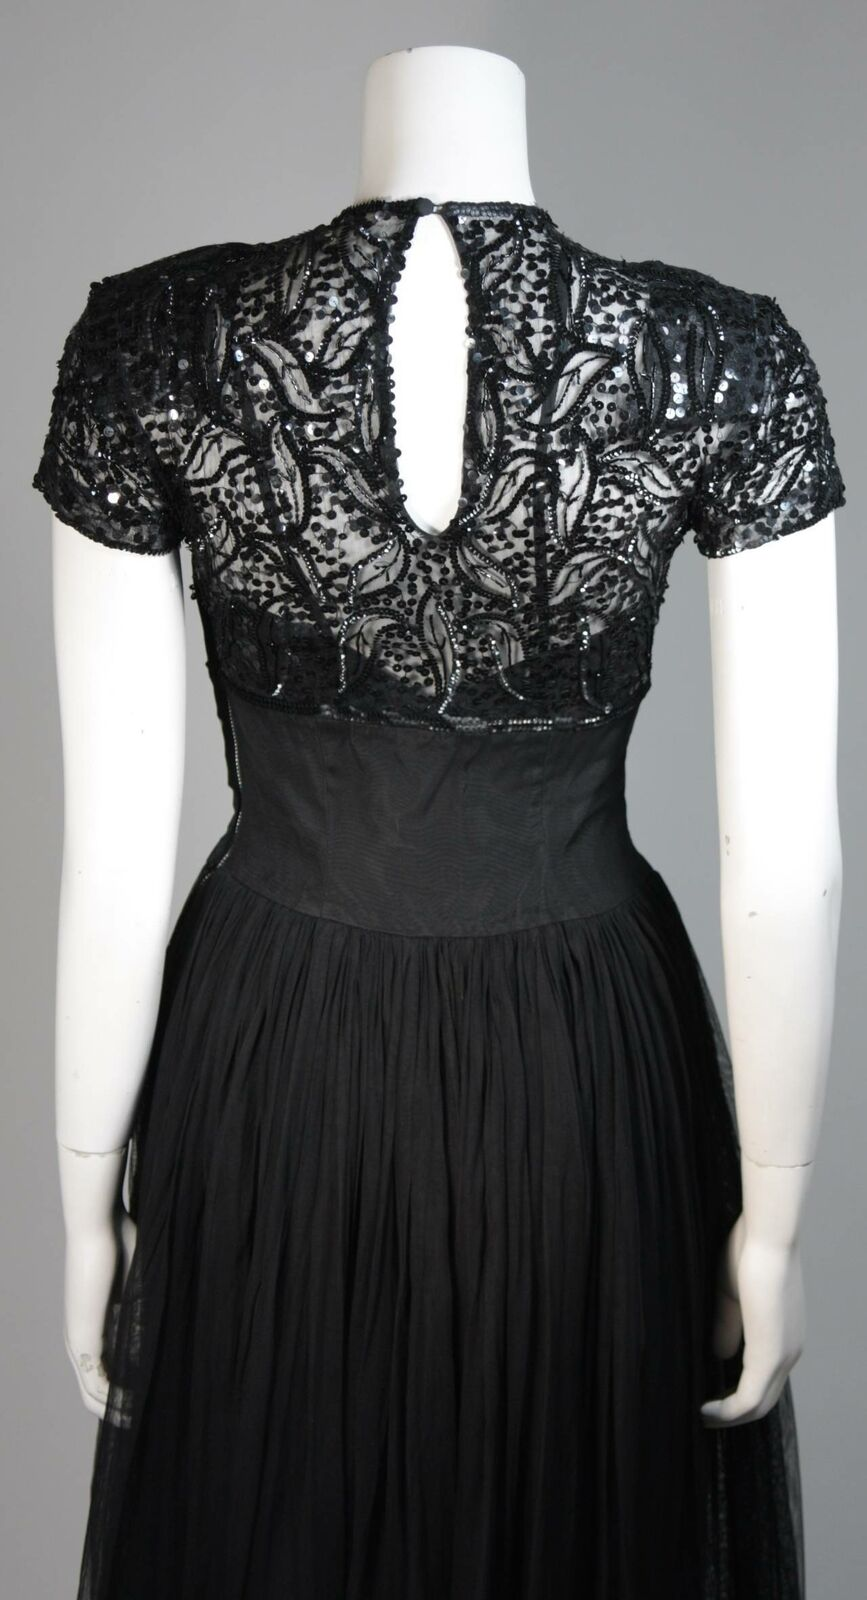 CEIL CHAPMAN Attributed Black Gown Size Small - image 8